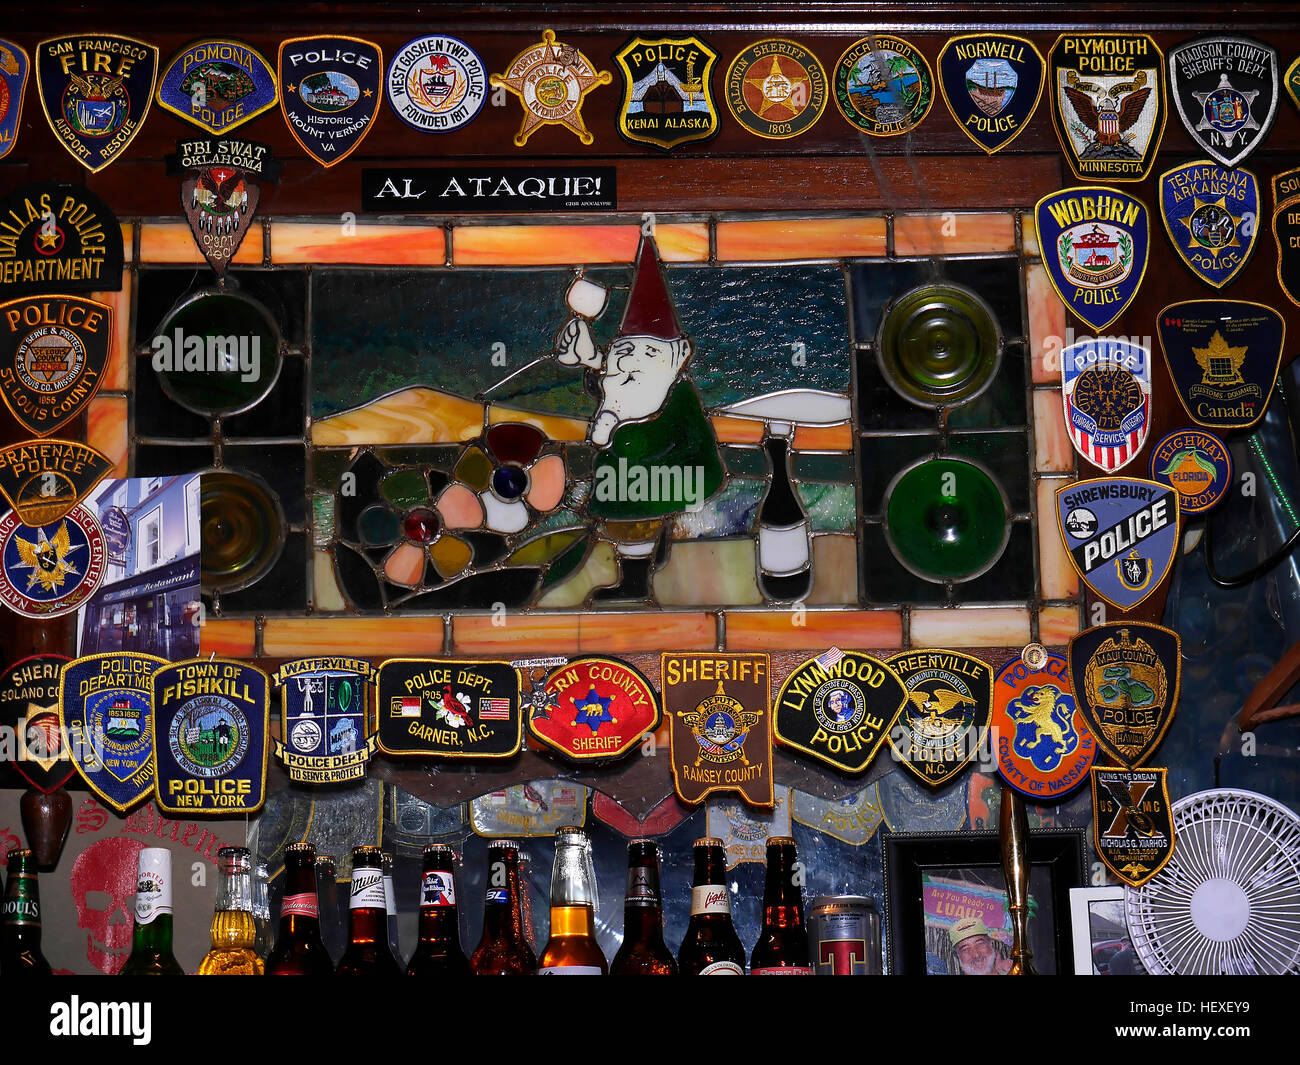 irish bar with display of embroidered police badges from all over